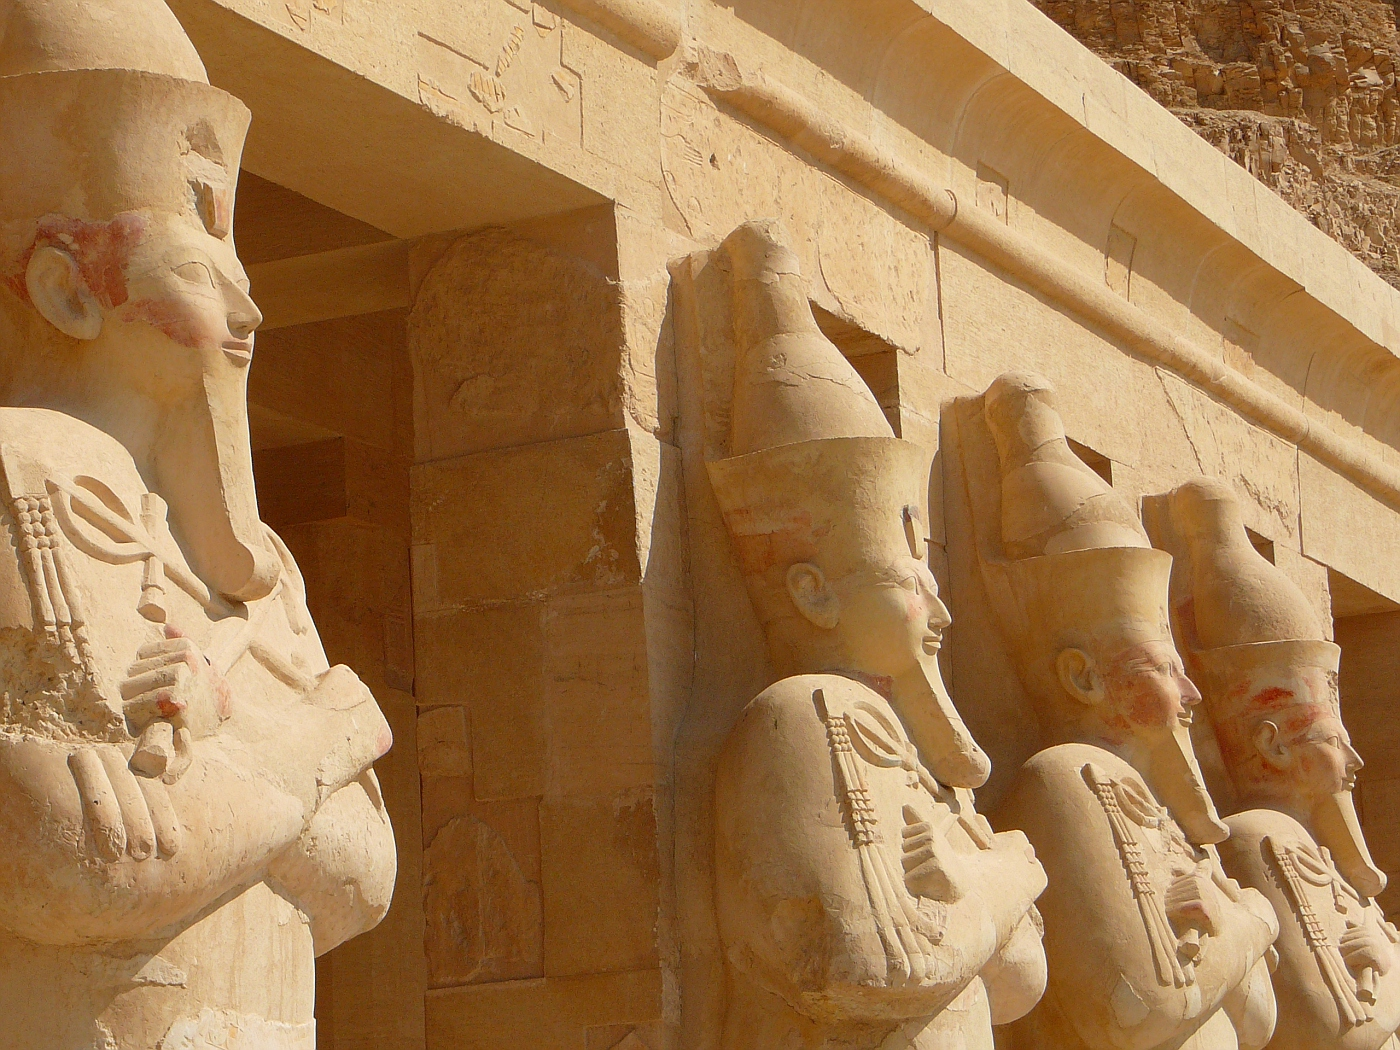 Statues of Hatshepsut with Fake Beard of Pharo